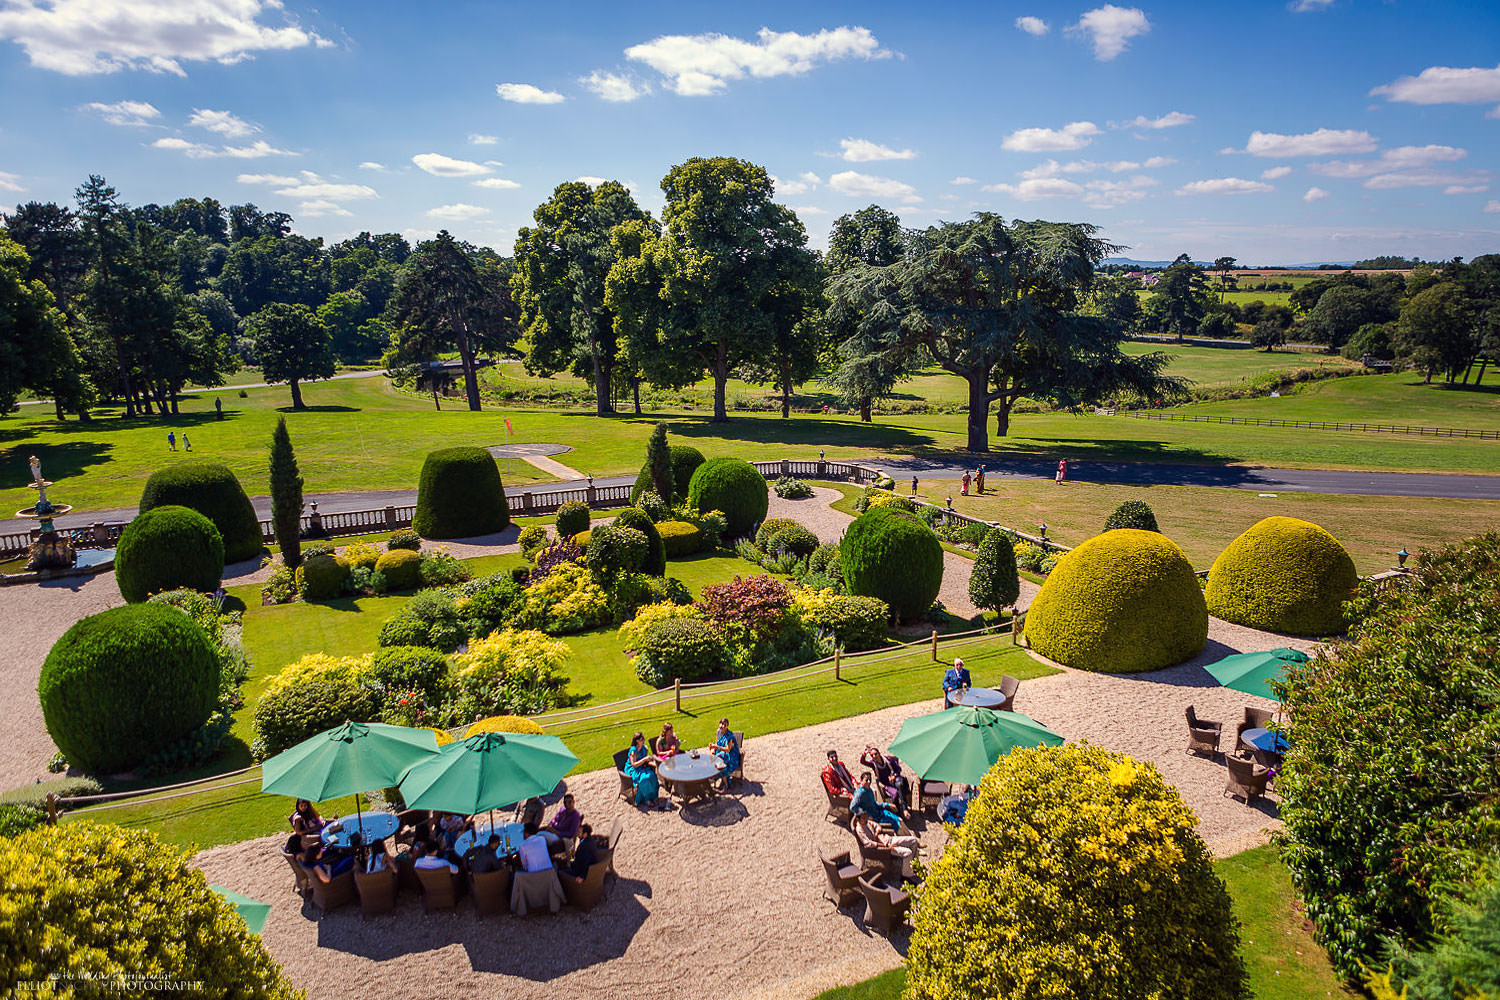 View of the grounds of the wedding venue Chateau Impney. Photo by Newcastle Upon Tyne based wedding photojournalist Elliot Nichol.